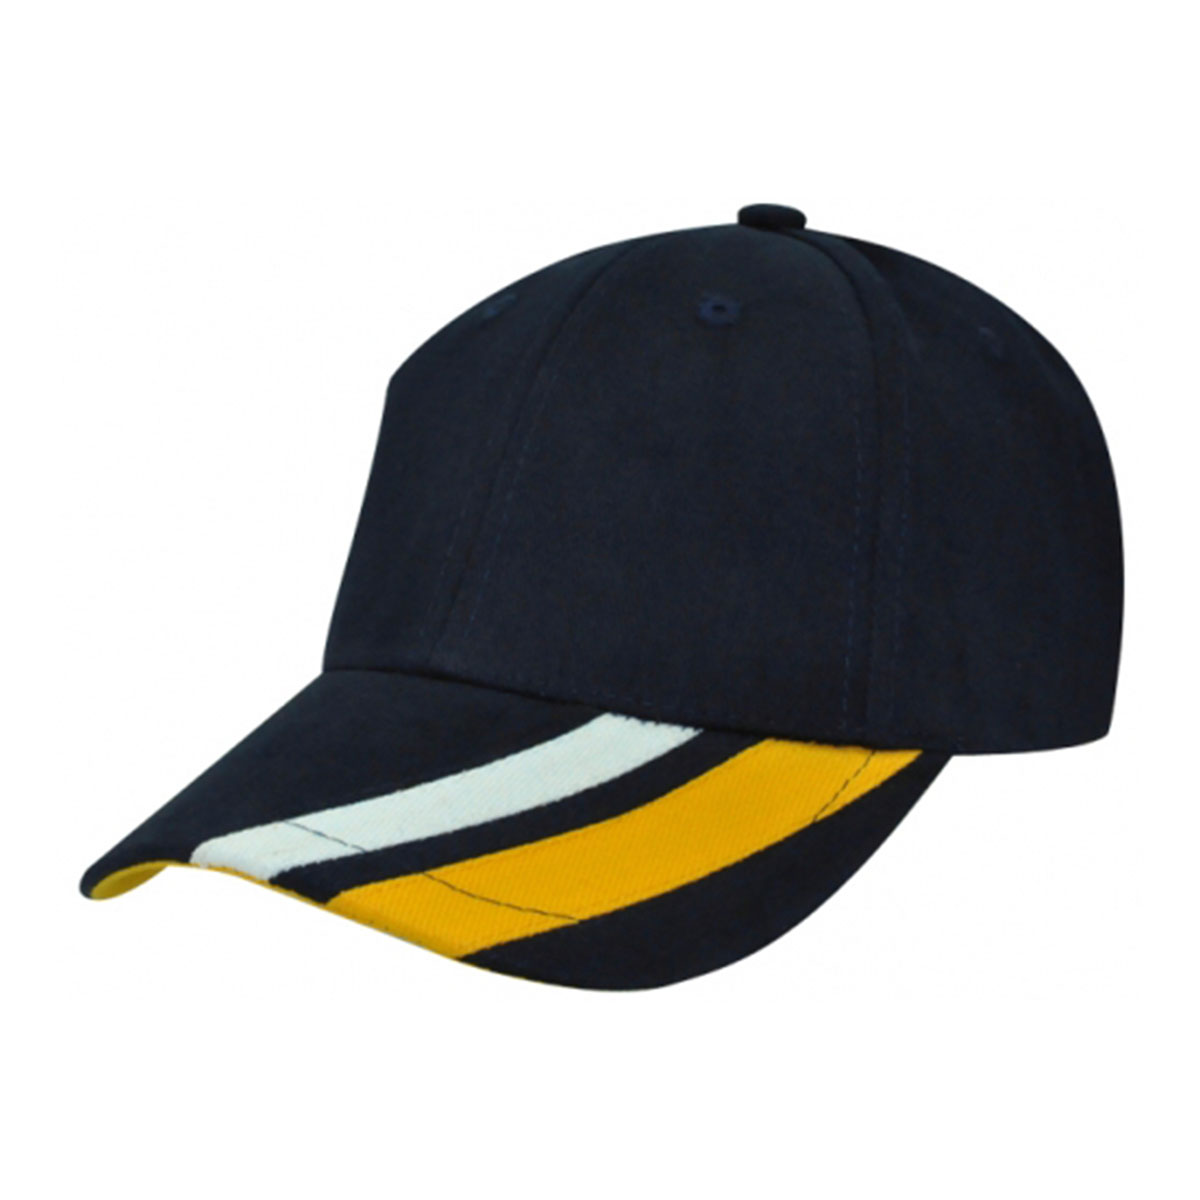 Metric Cap-Navy / White / Aussie Gold